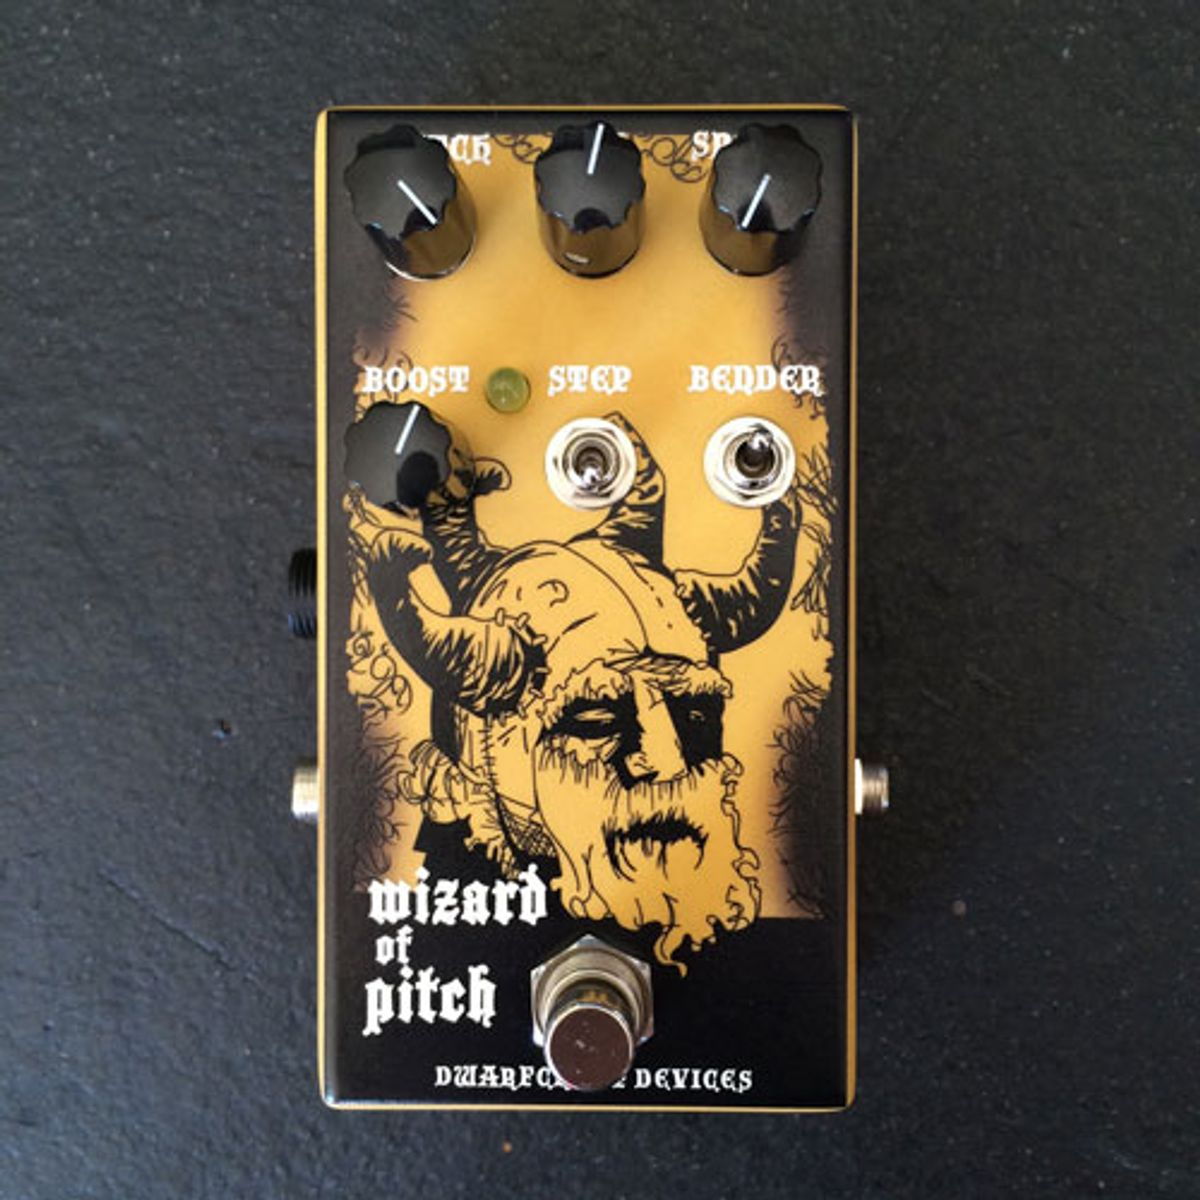 Dwarfcraft Devices Releases the Wizard of Pitch, Silver Rose v2, Paraloop, and Minivan Echo